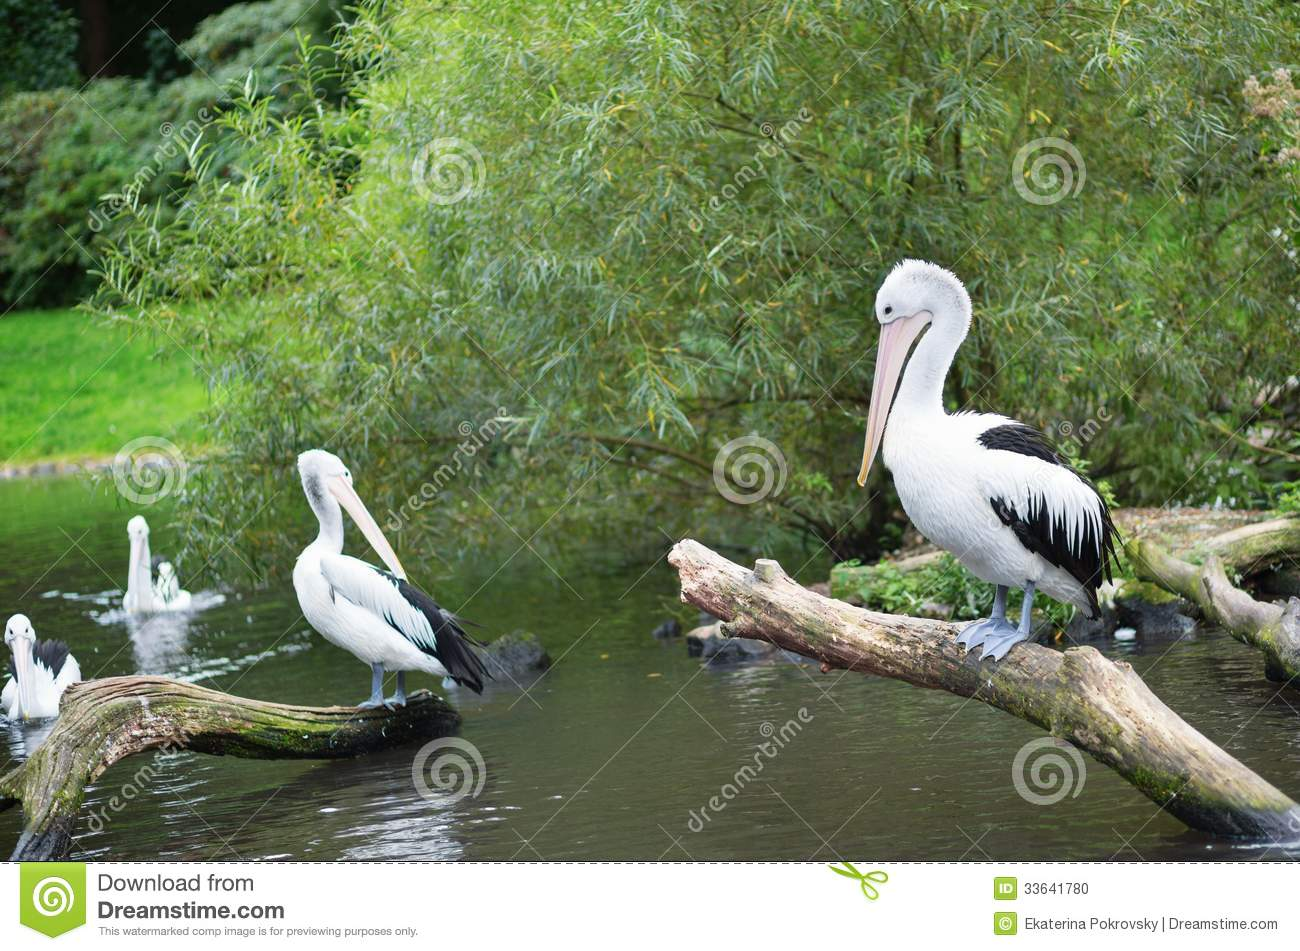 Chile Pelicans In Natural Environment Stock Photo - Image: 33641780